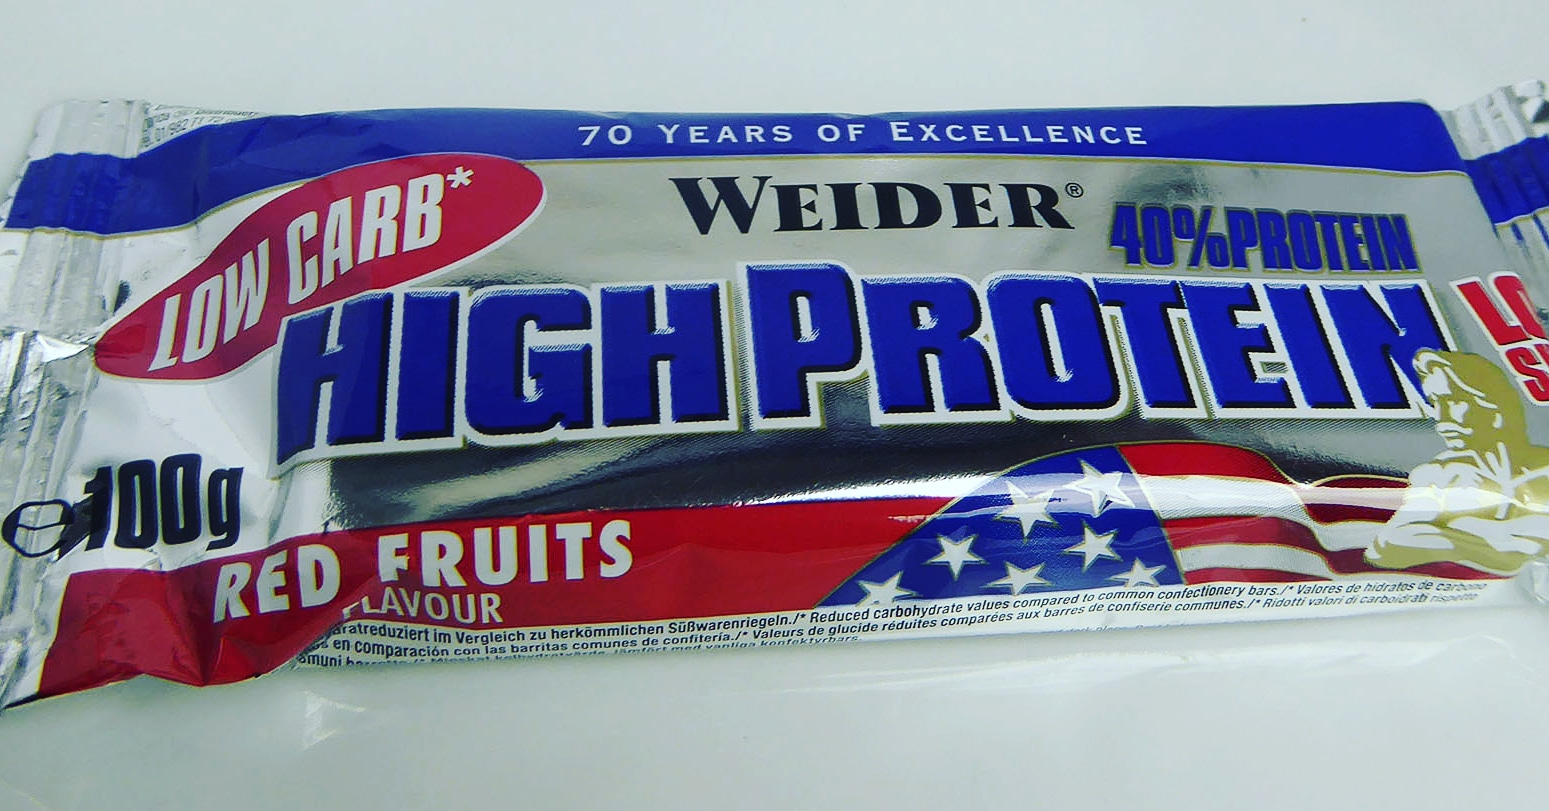 Weider High Protein Bar Low Sugar Red Fruits Rote Früchte Eiweißriegel Proteinriegel